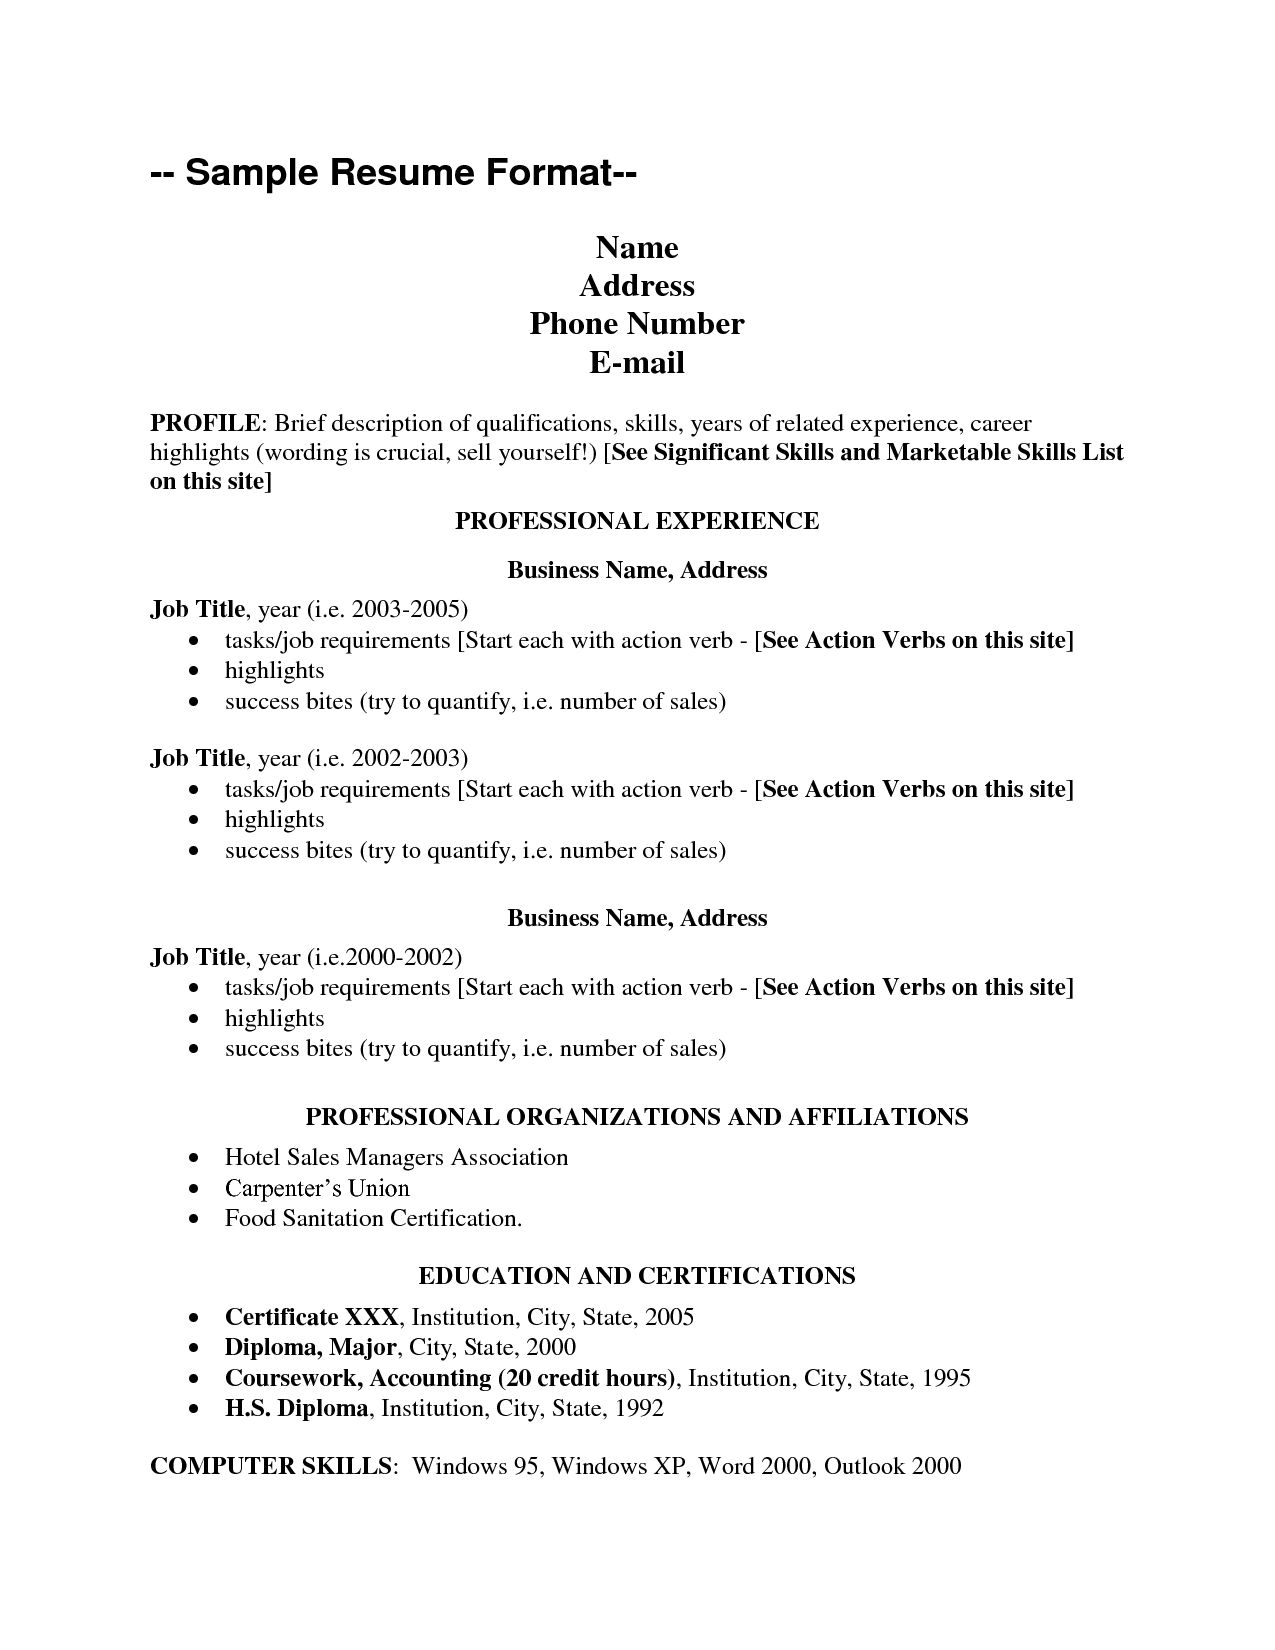 List Of Resume Skills Skills List For Resume  Resume Cover Letter Template  Resume .